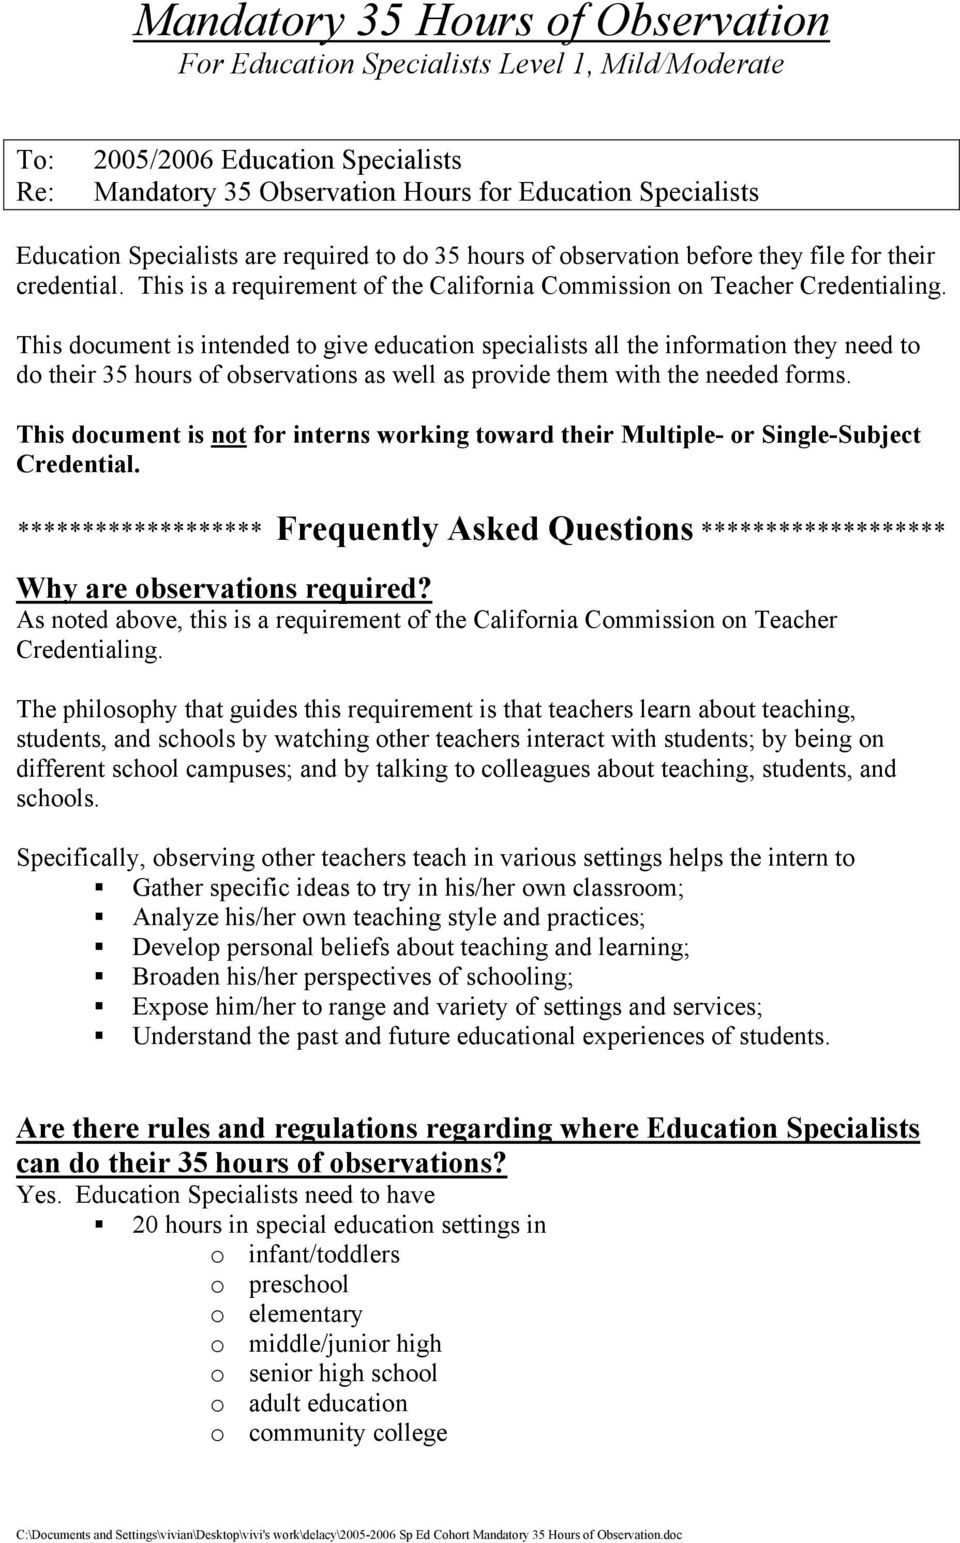 This document is intended to give education specialists all the information they need to do their 35 hours of observations as well as provide them with the needed forms.